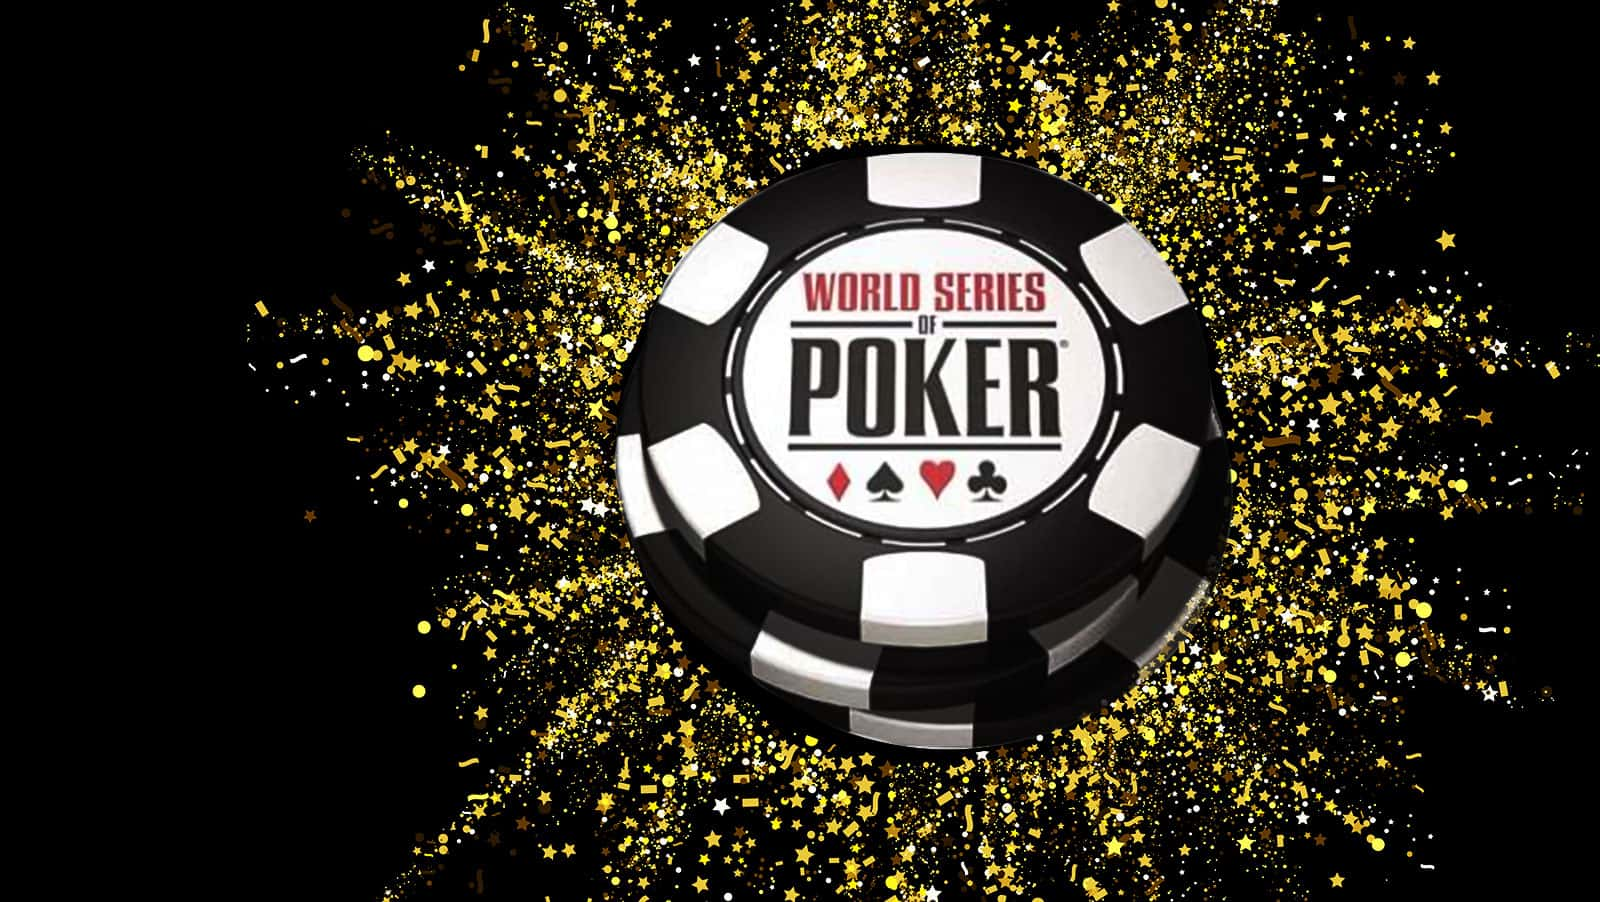 almost-e30-million-won-at-wsop-europe-all-15-event-winners-listed-min